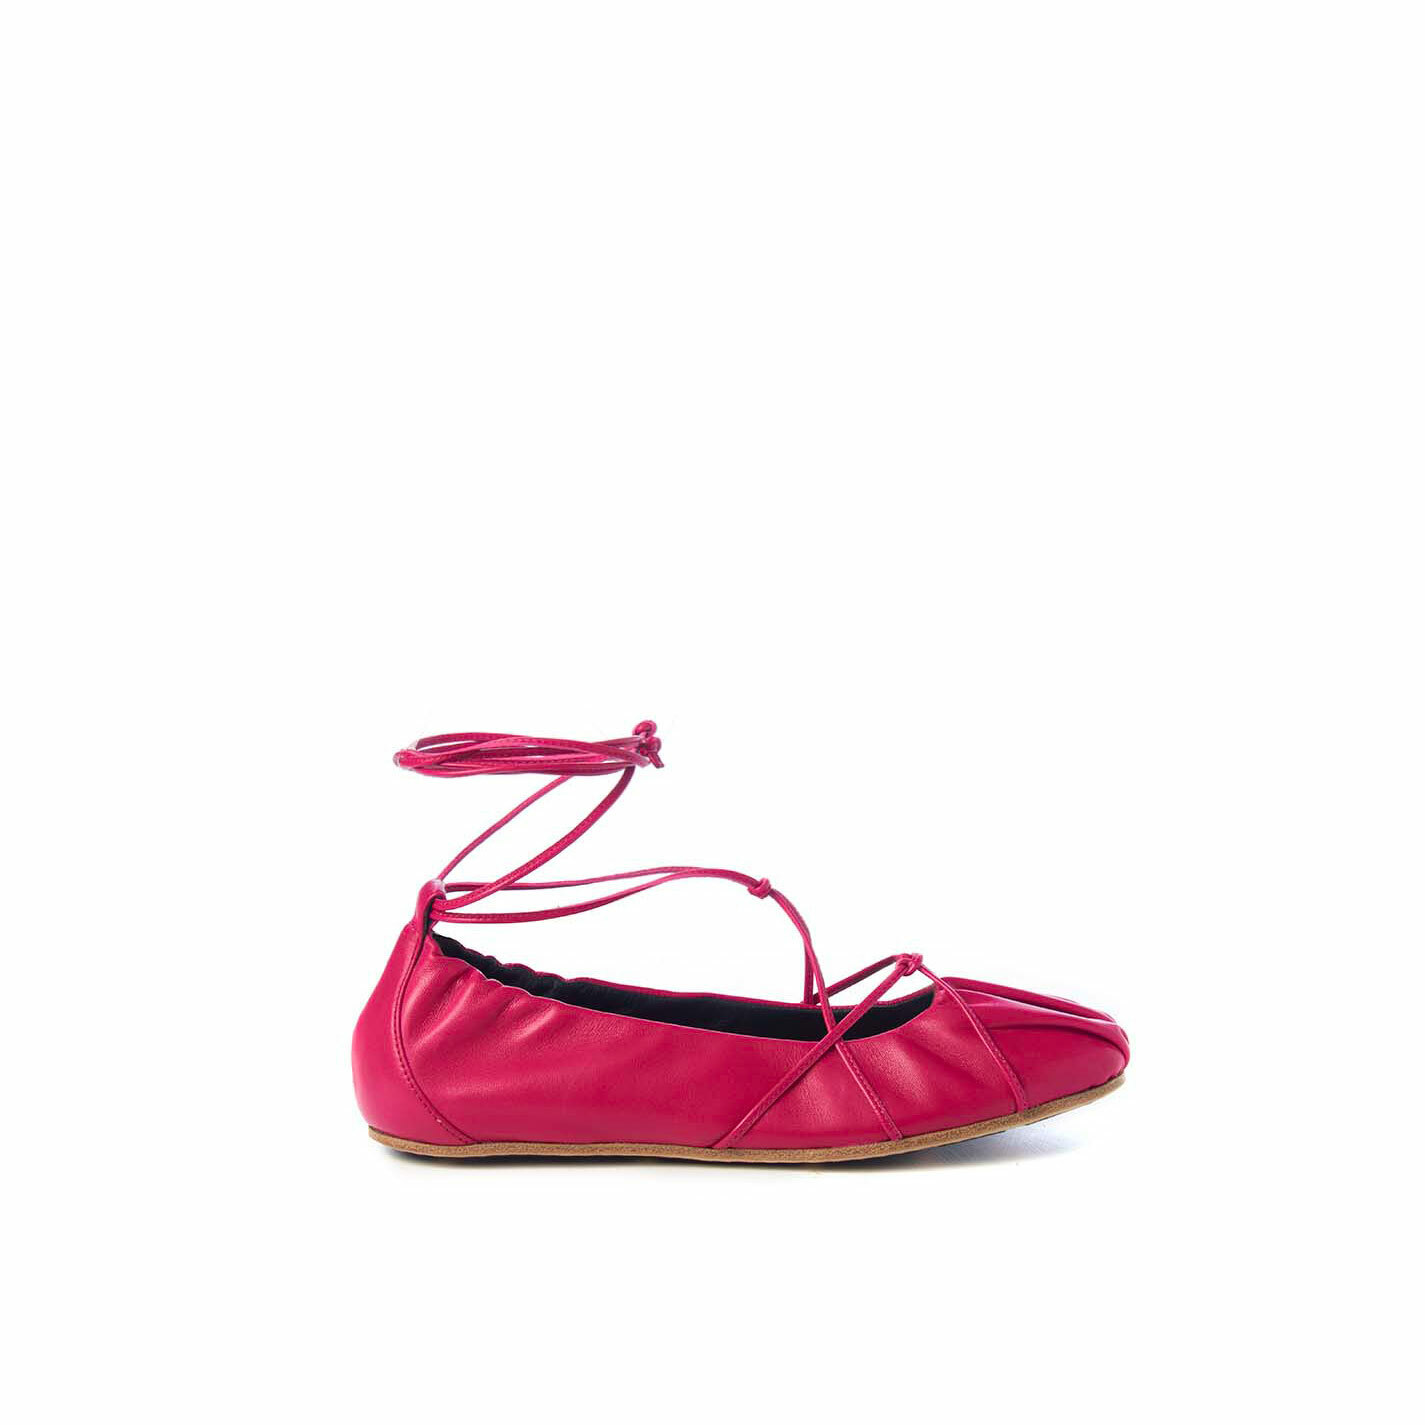 Ballerina flats in soft magenta nappa leather with string